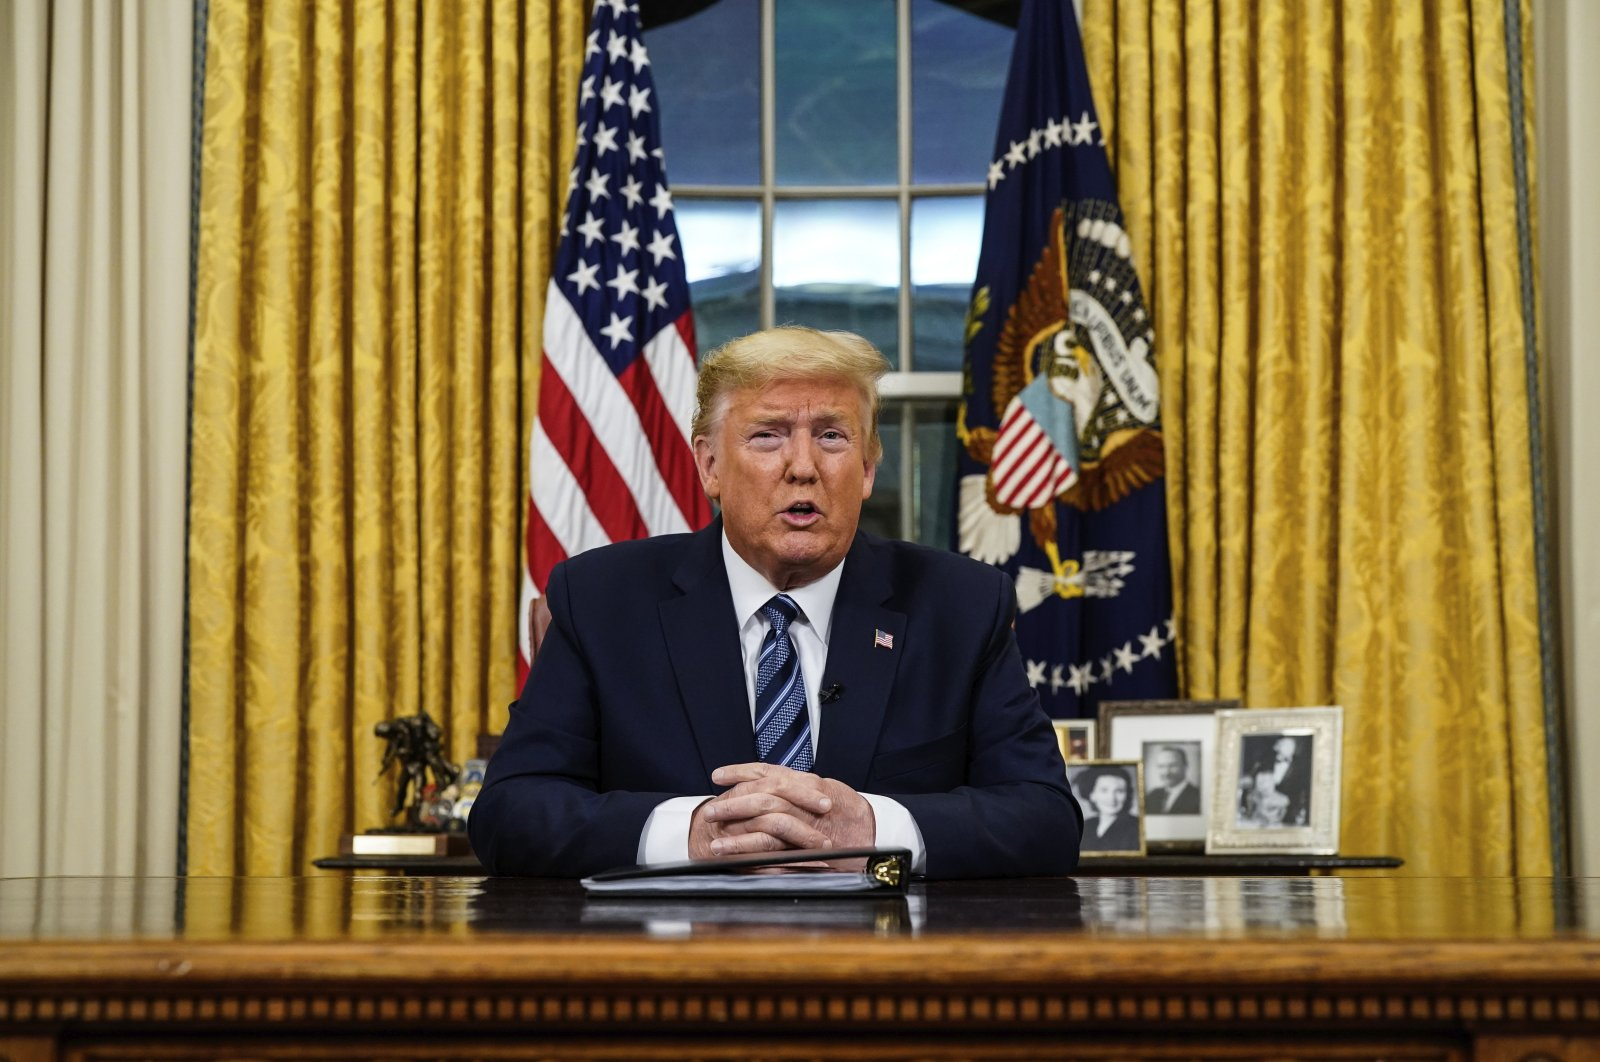 In this March 11, 2020, file photo President Donald Trump speaks in an address to the nation from the Oval Office at the White House about the coronavirus in Washington. (AP Photo)